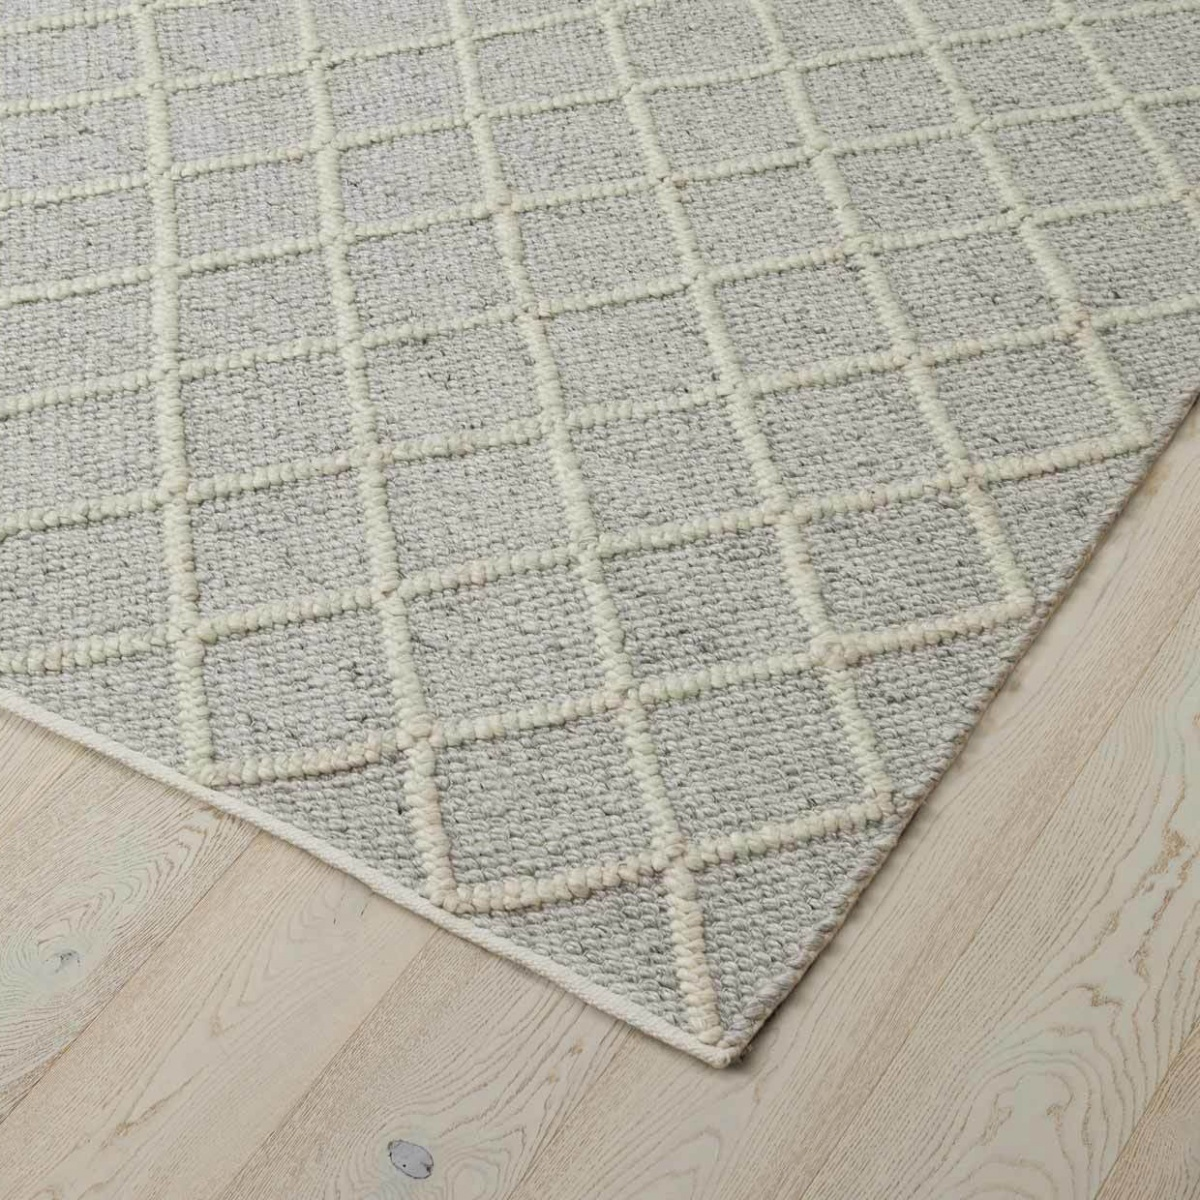 Mitre Feather Rug - 200x300cm